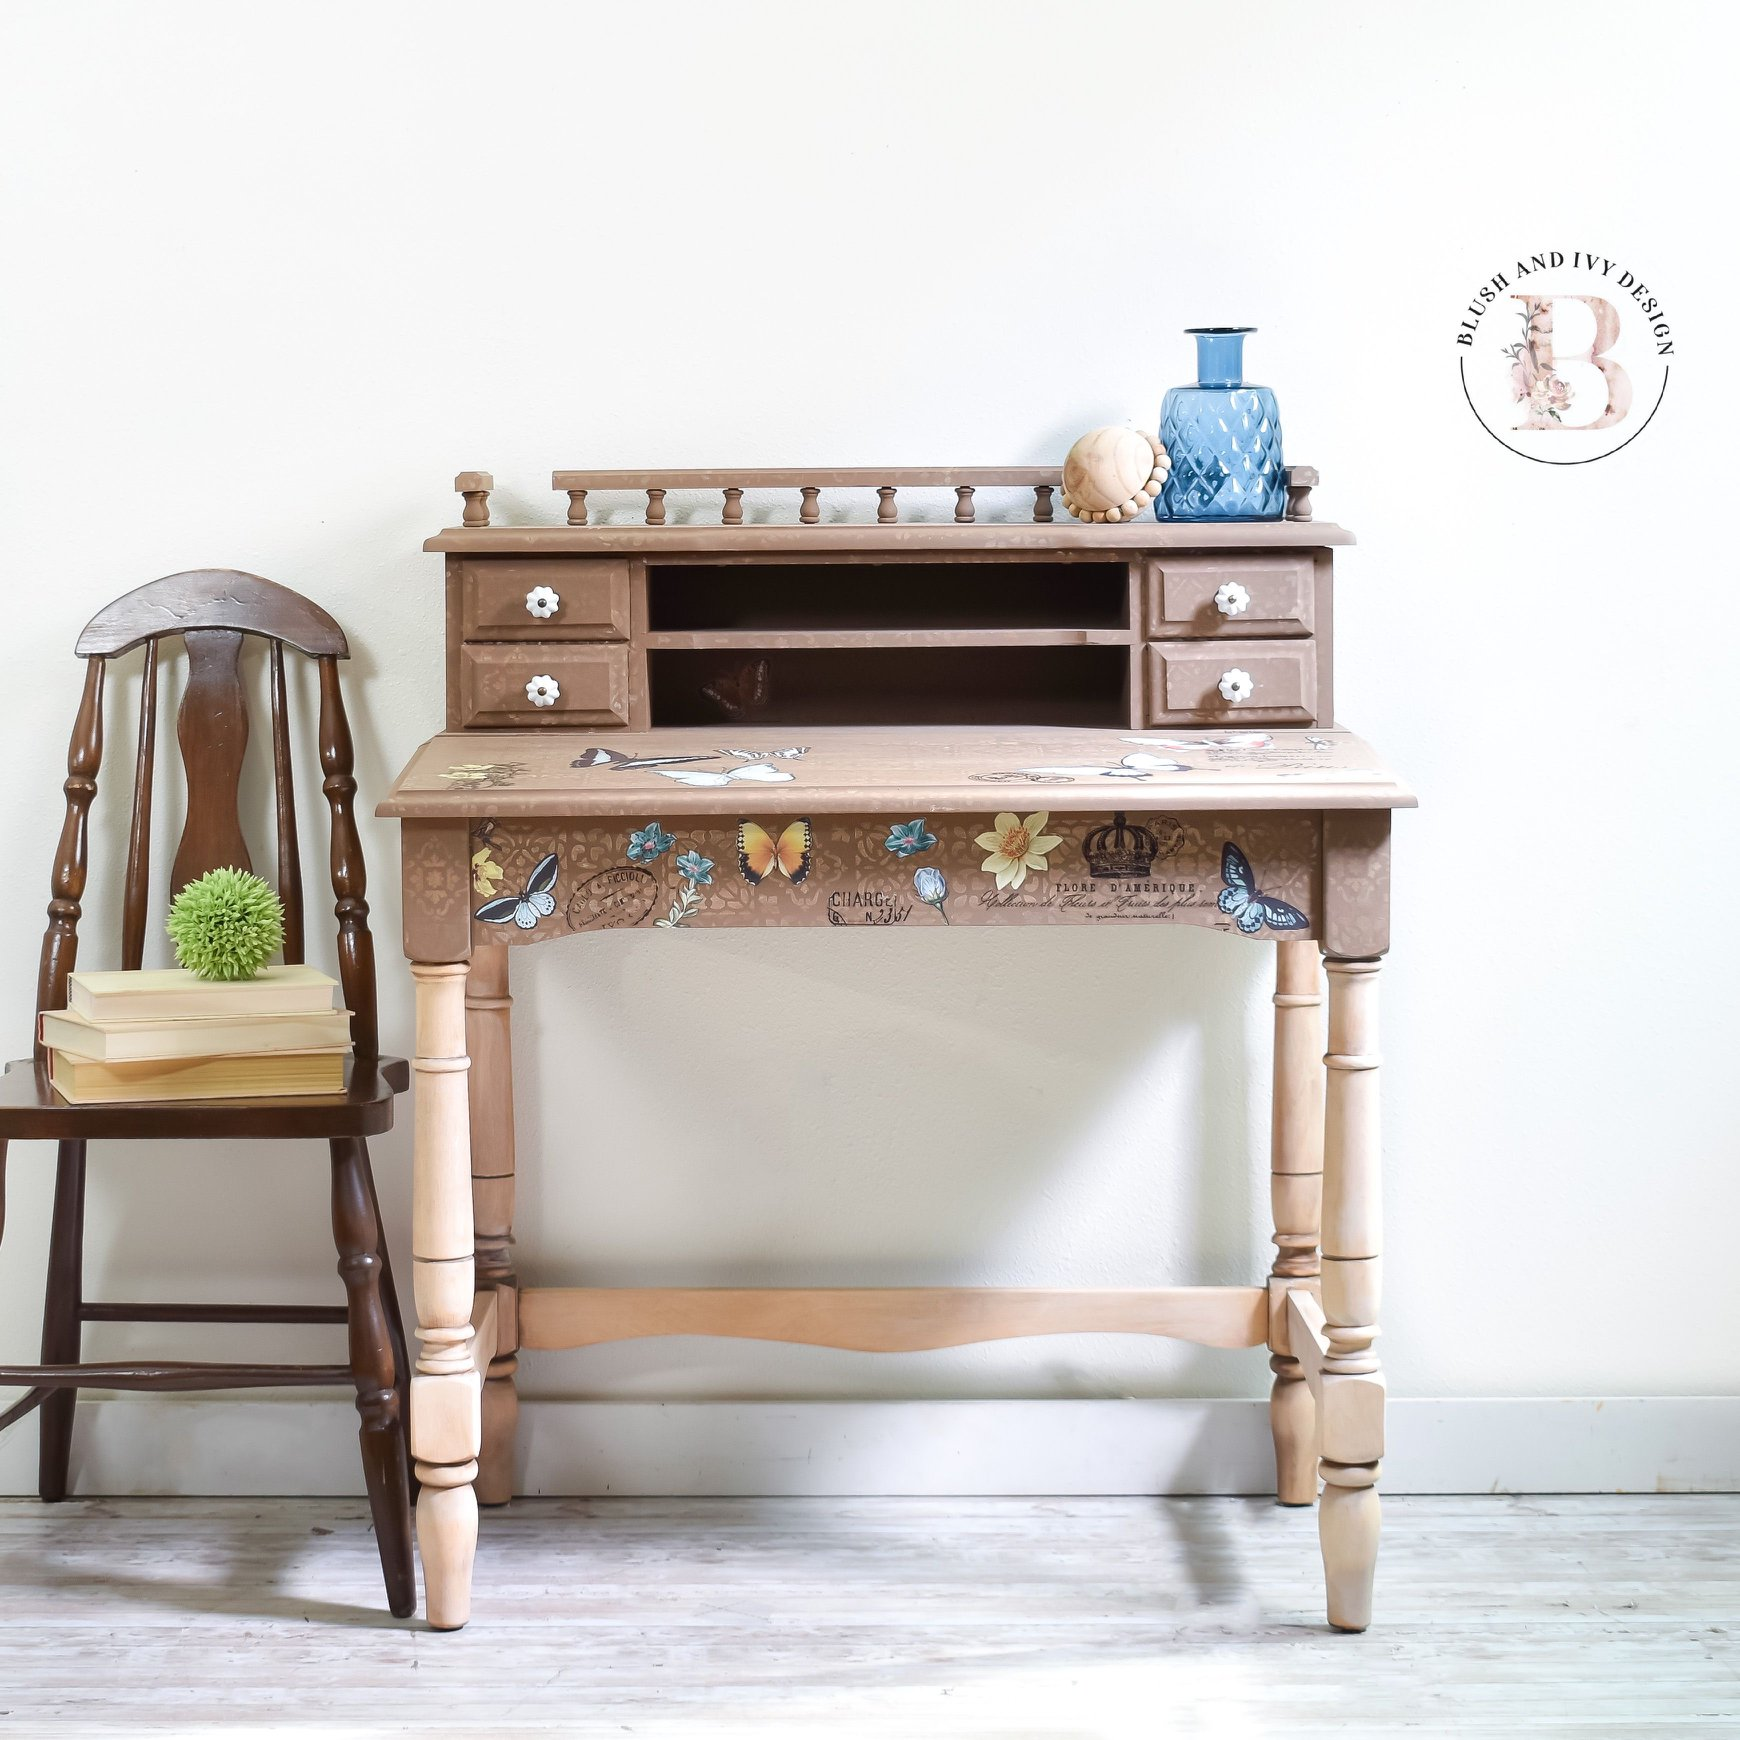 Childrens Desk and Chair in Canape with Floral Stencil and Natural Wood Legs